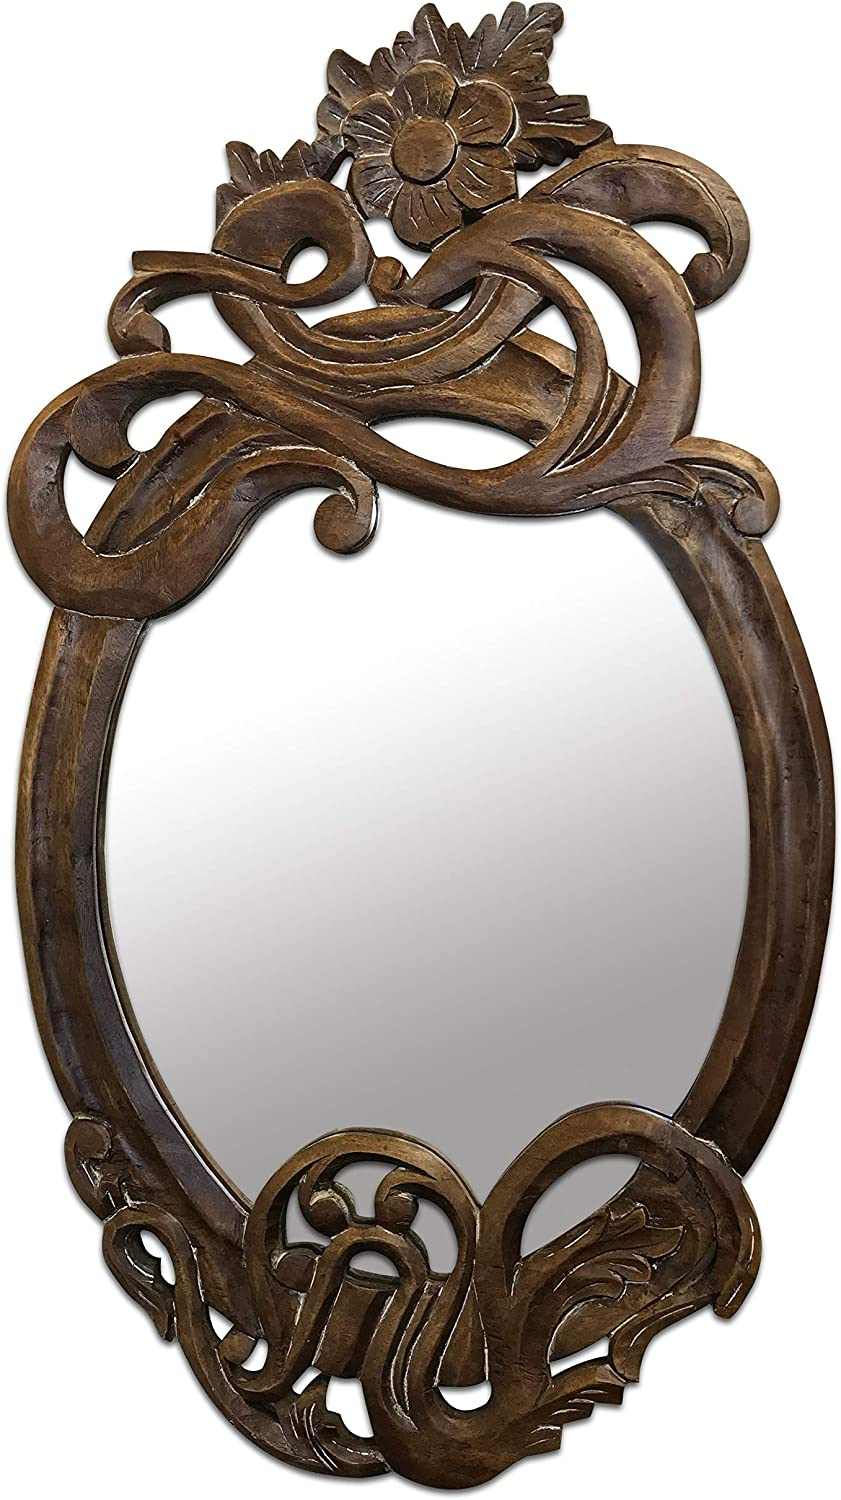 DecorShore Modernismo - 32 in x 18 in Antique Art Nouveau Style Hand Carved Mango Wood Decorative Wall Mirror